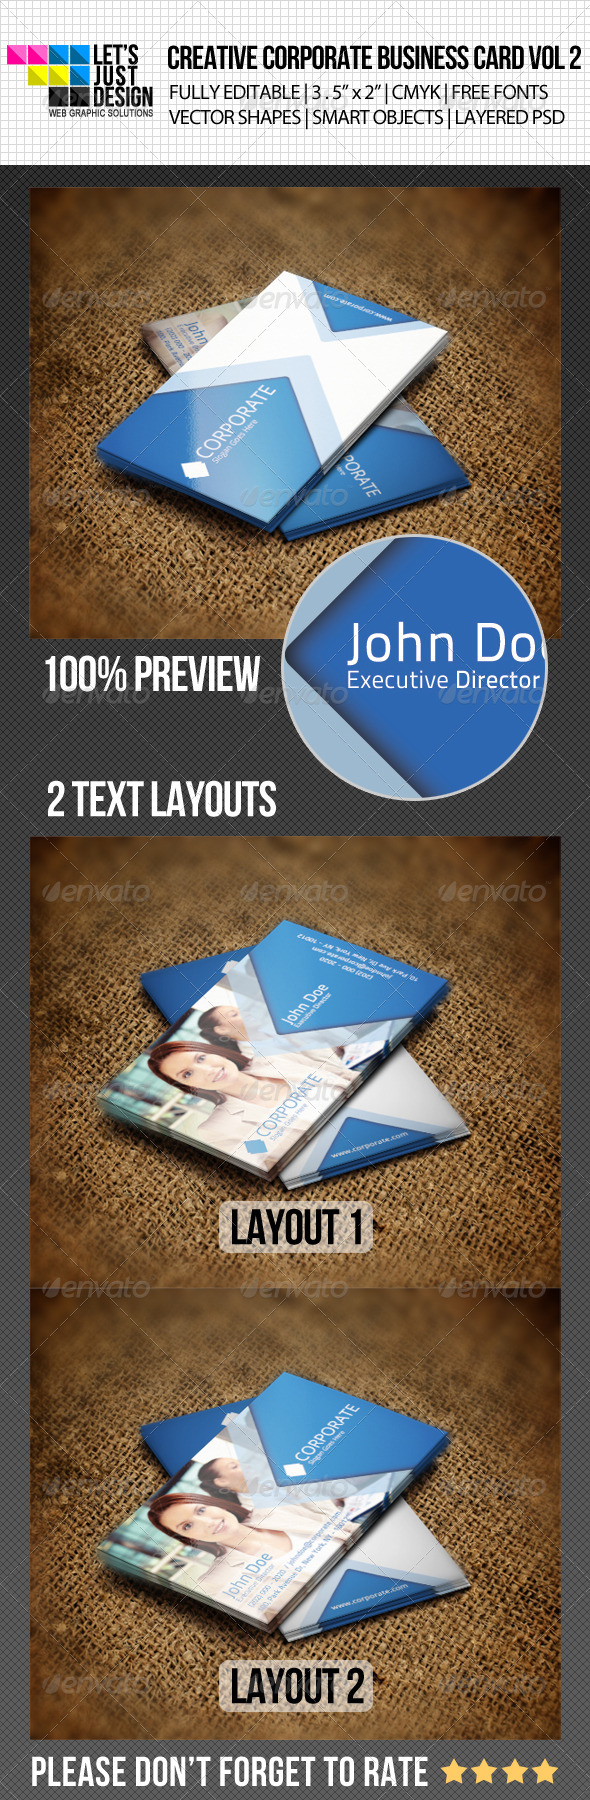 GraphicRiver Creative Corporate Business Card Vol 2 4939542